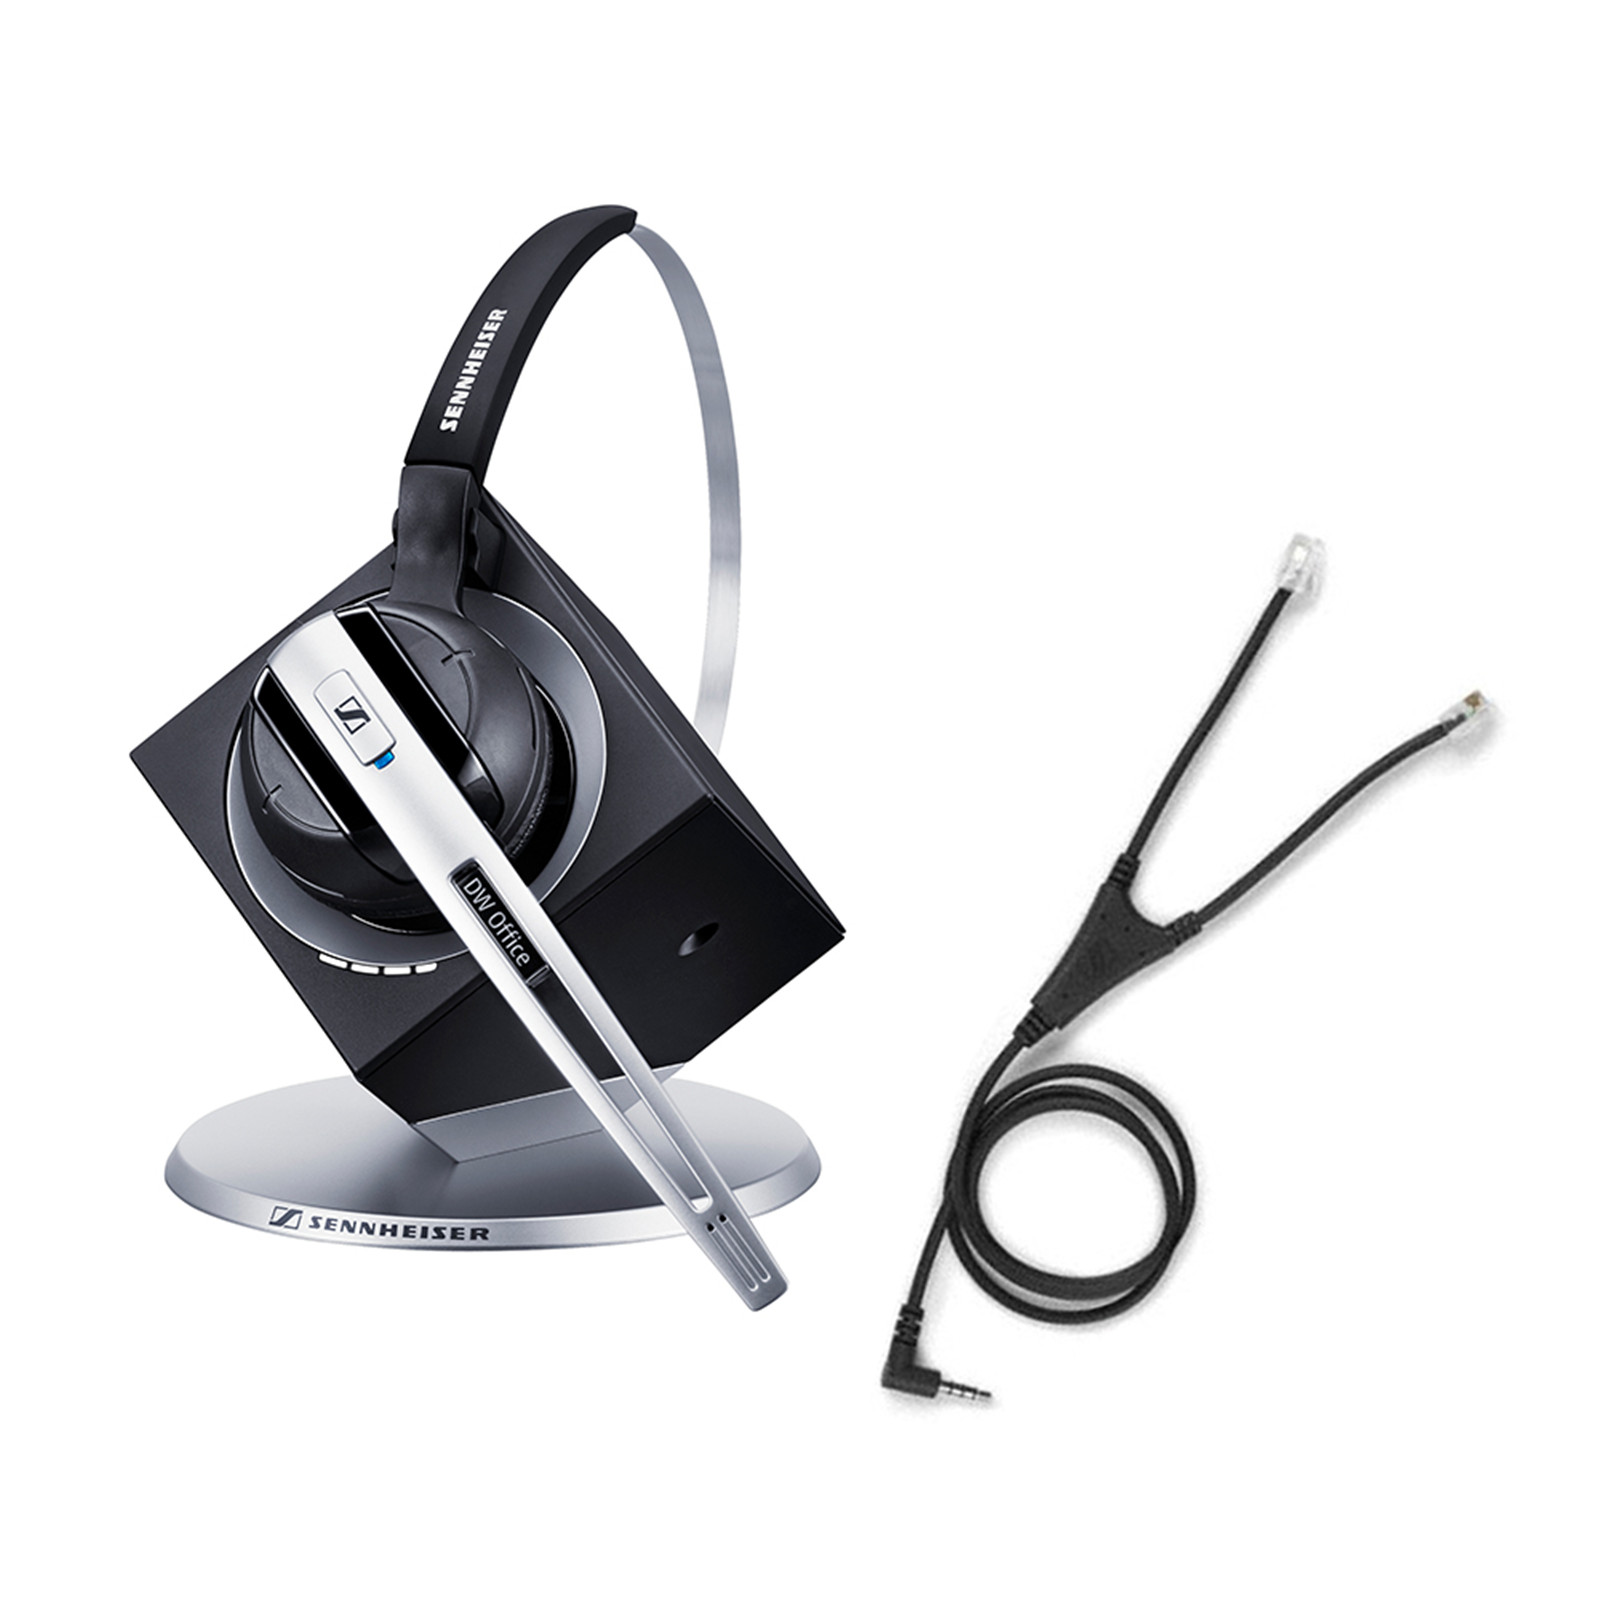 c24d366167a Sennheiser DW Office Wireless DECT Office Headset with Base Station & Audio  Cable - for Mobile Phone